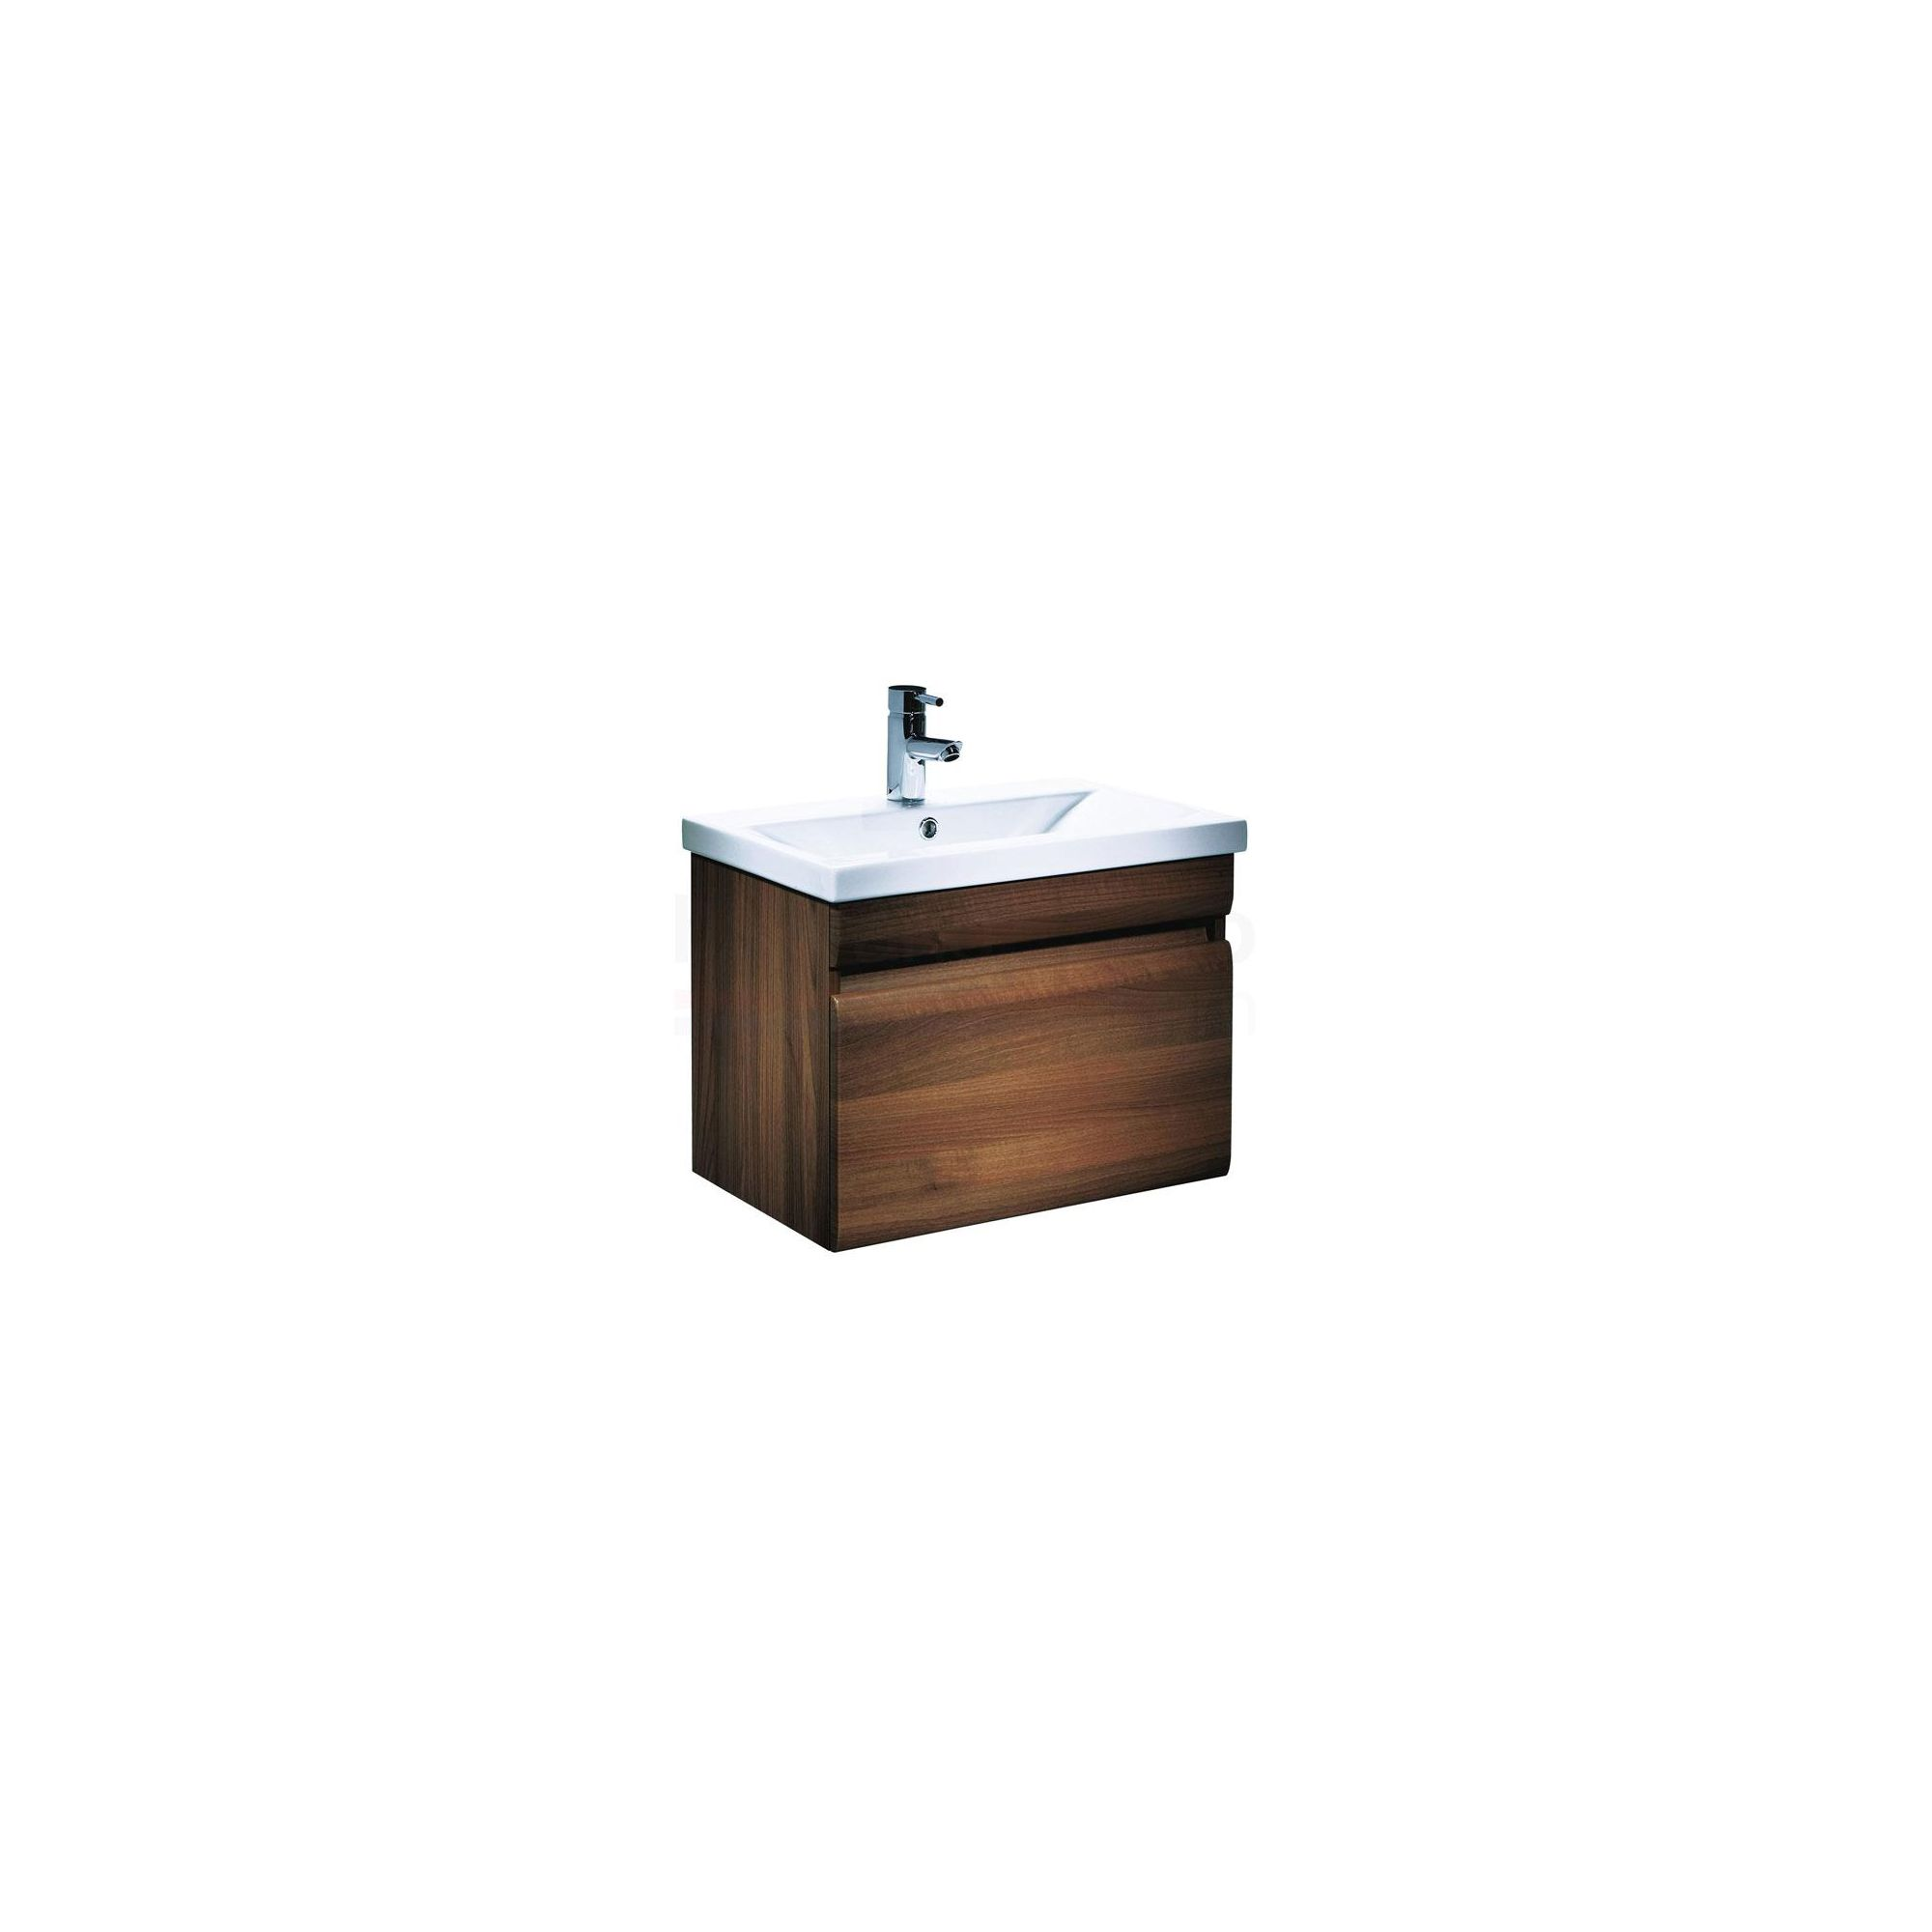 Tavistock Groove Walnut Wall Mounted Cabinet and Basin - 1 Tap Hole - 600mm Wide